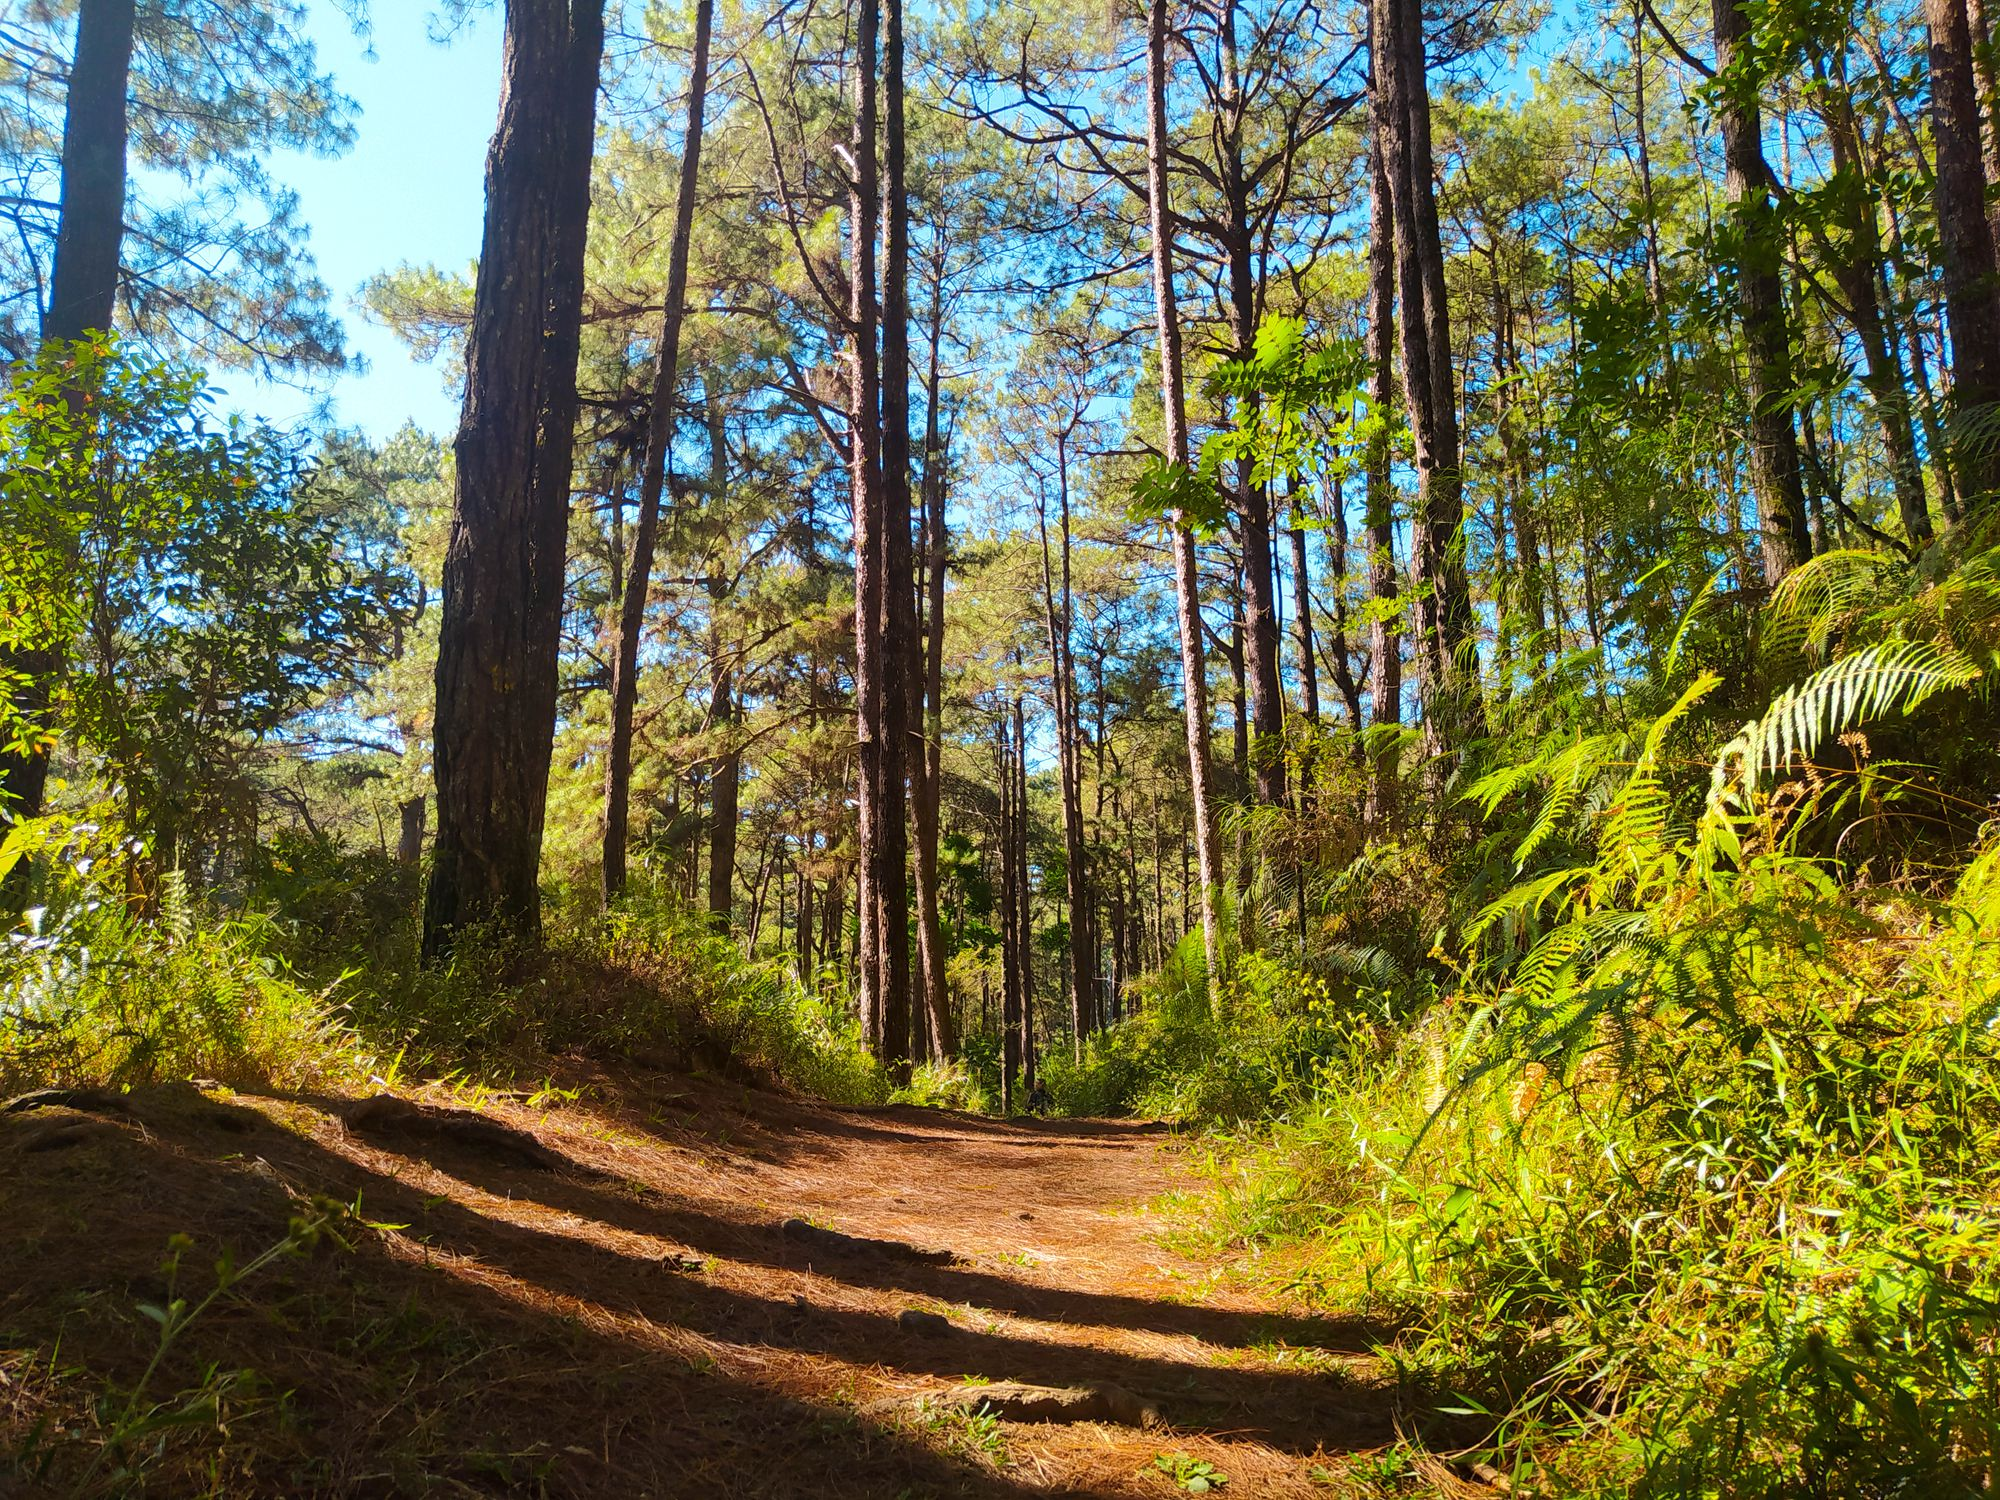 Dirt foot path going through thick vegetation and pine trees somewhere along the Eco-Trail